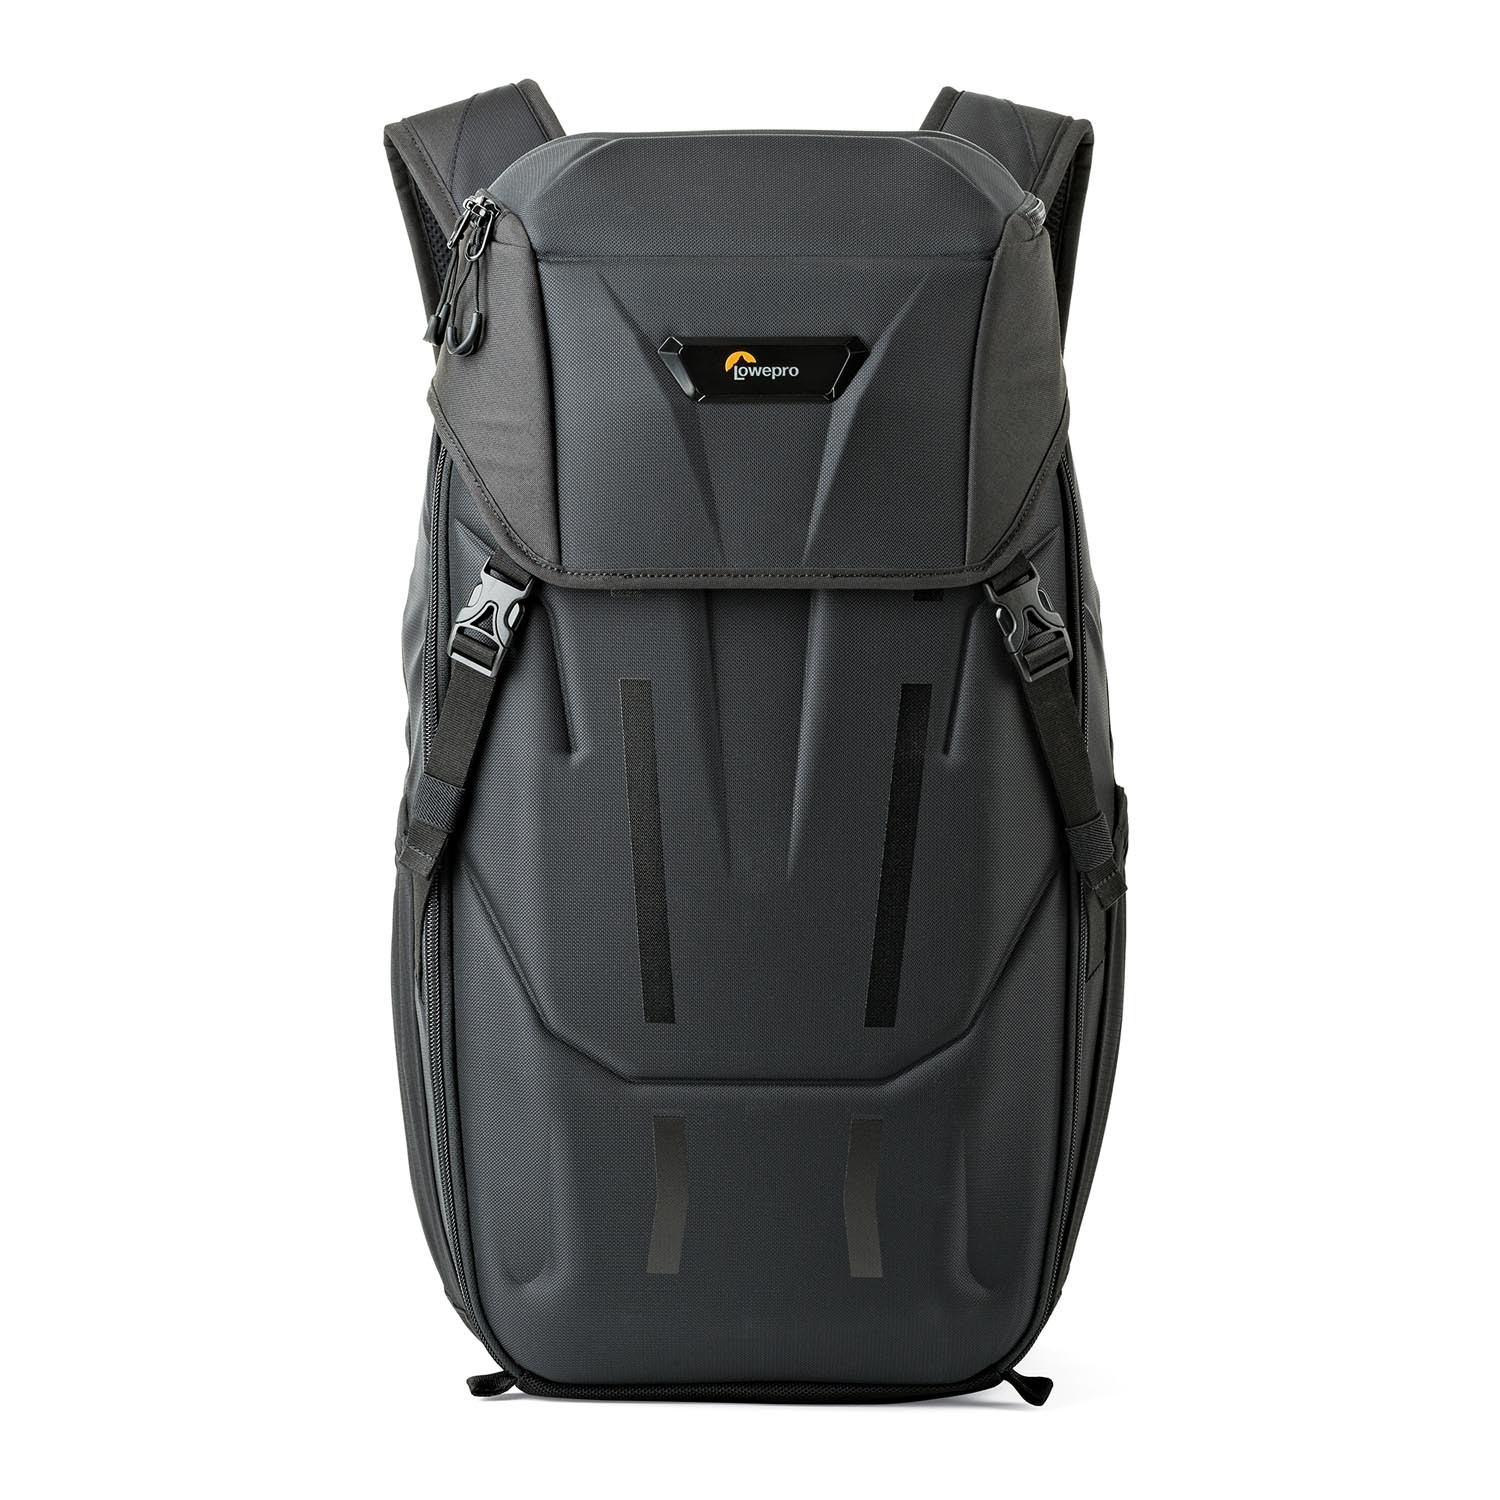 Lowepro Droneguard Pro Inspired For DJI Inspire 1 2 Black